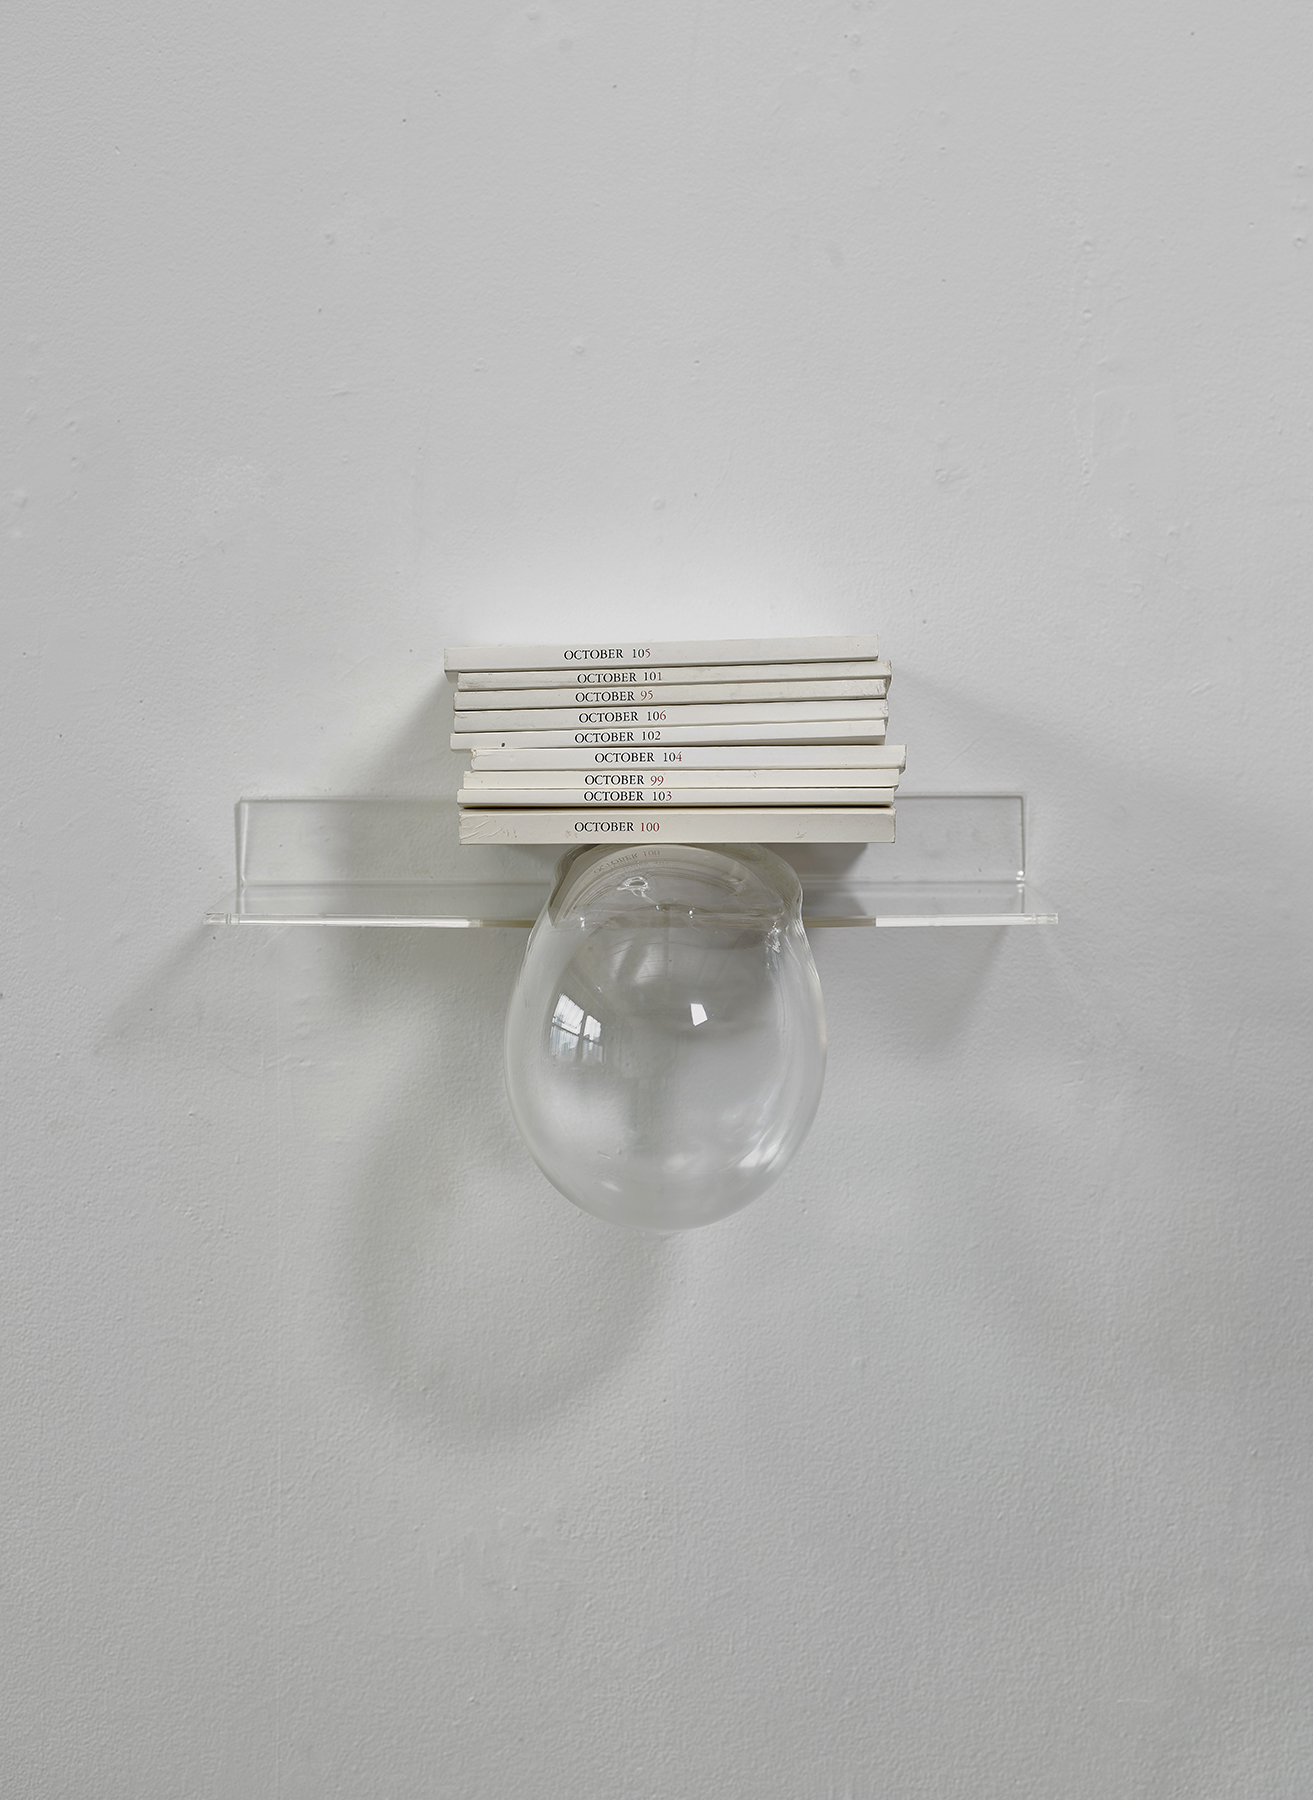 Burden of knowledge   Glass, plastic shelve, printed periodicals 12 x 12 x 10 in